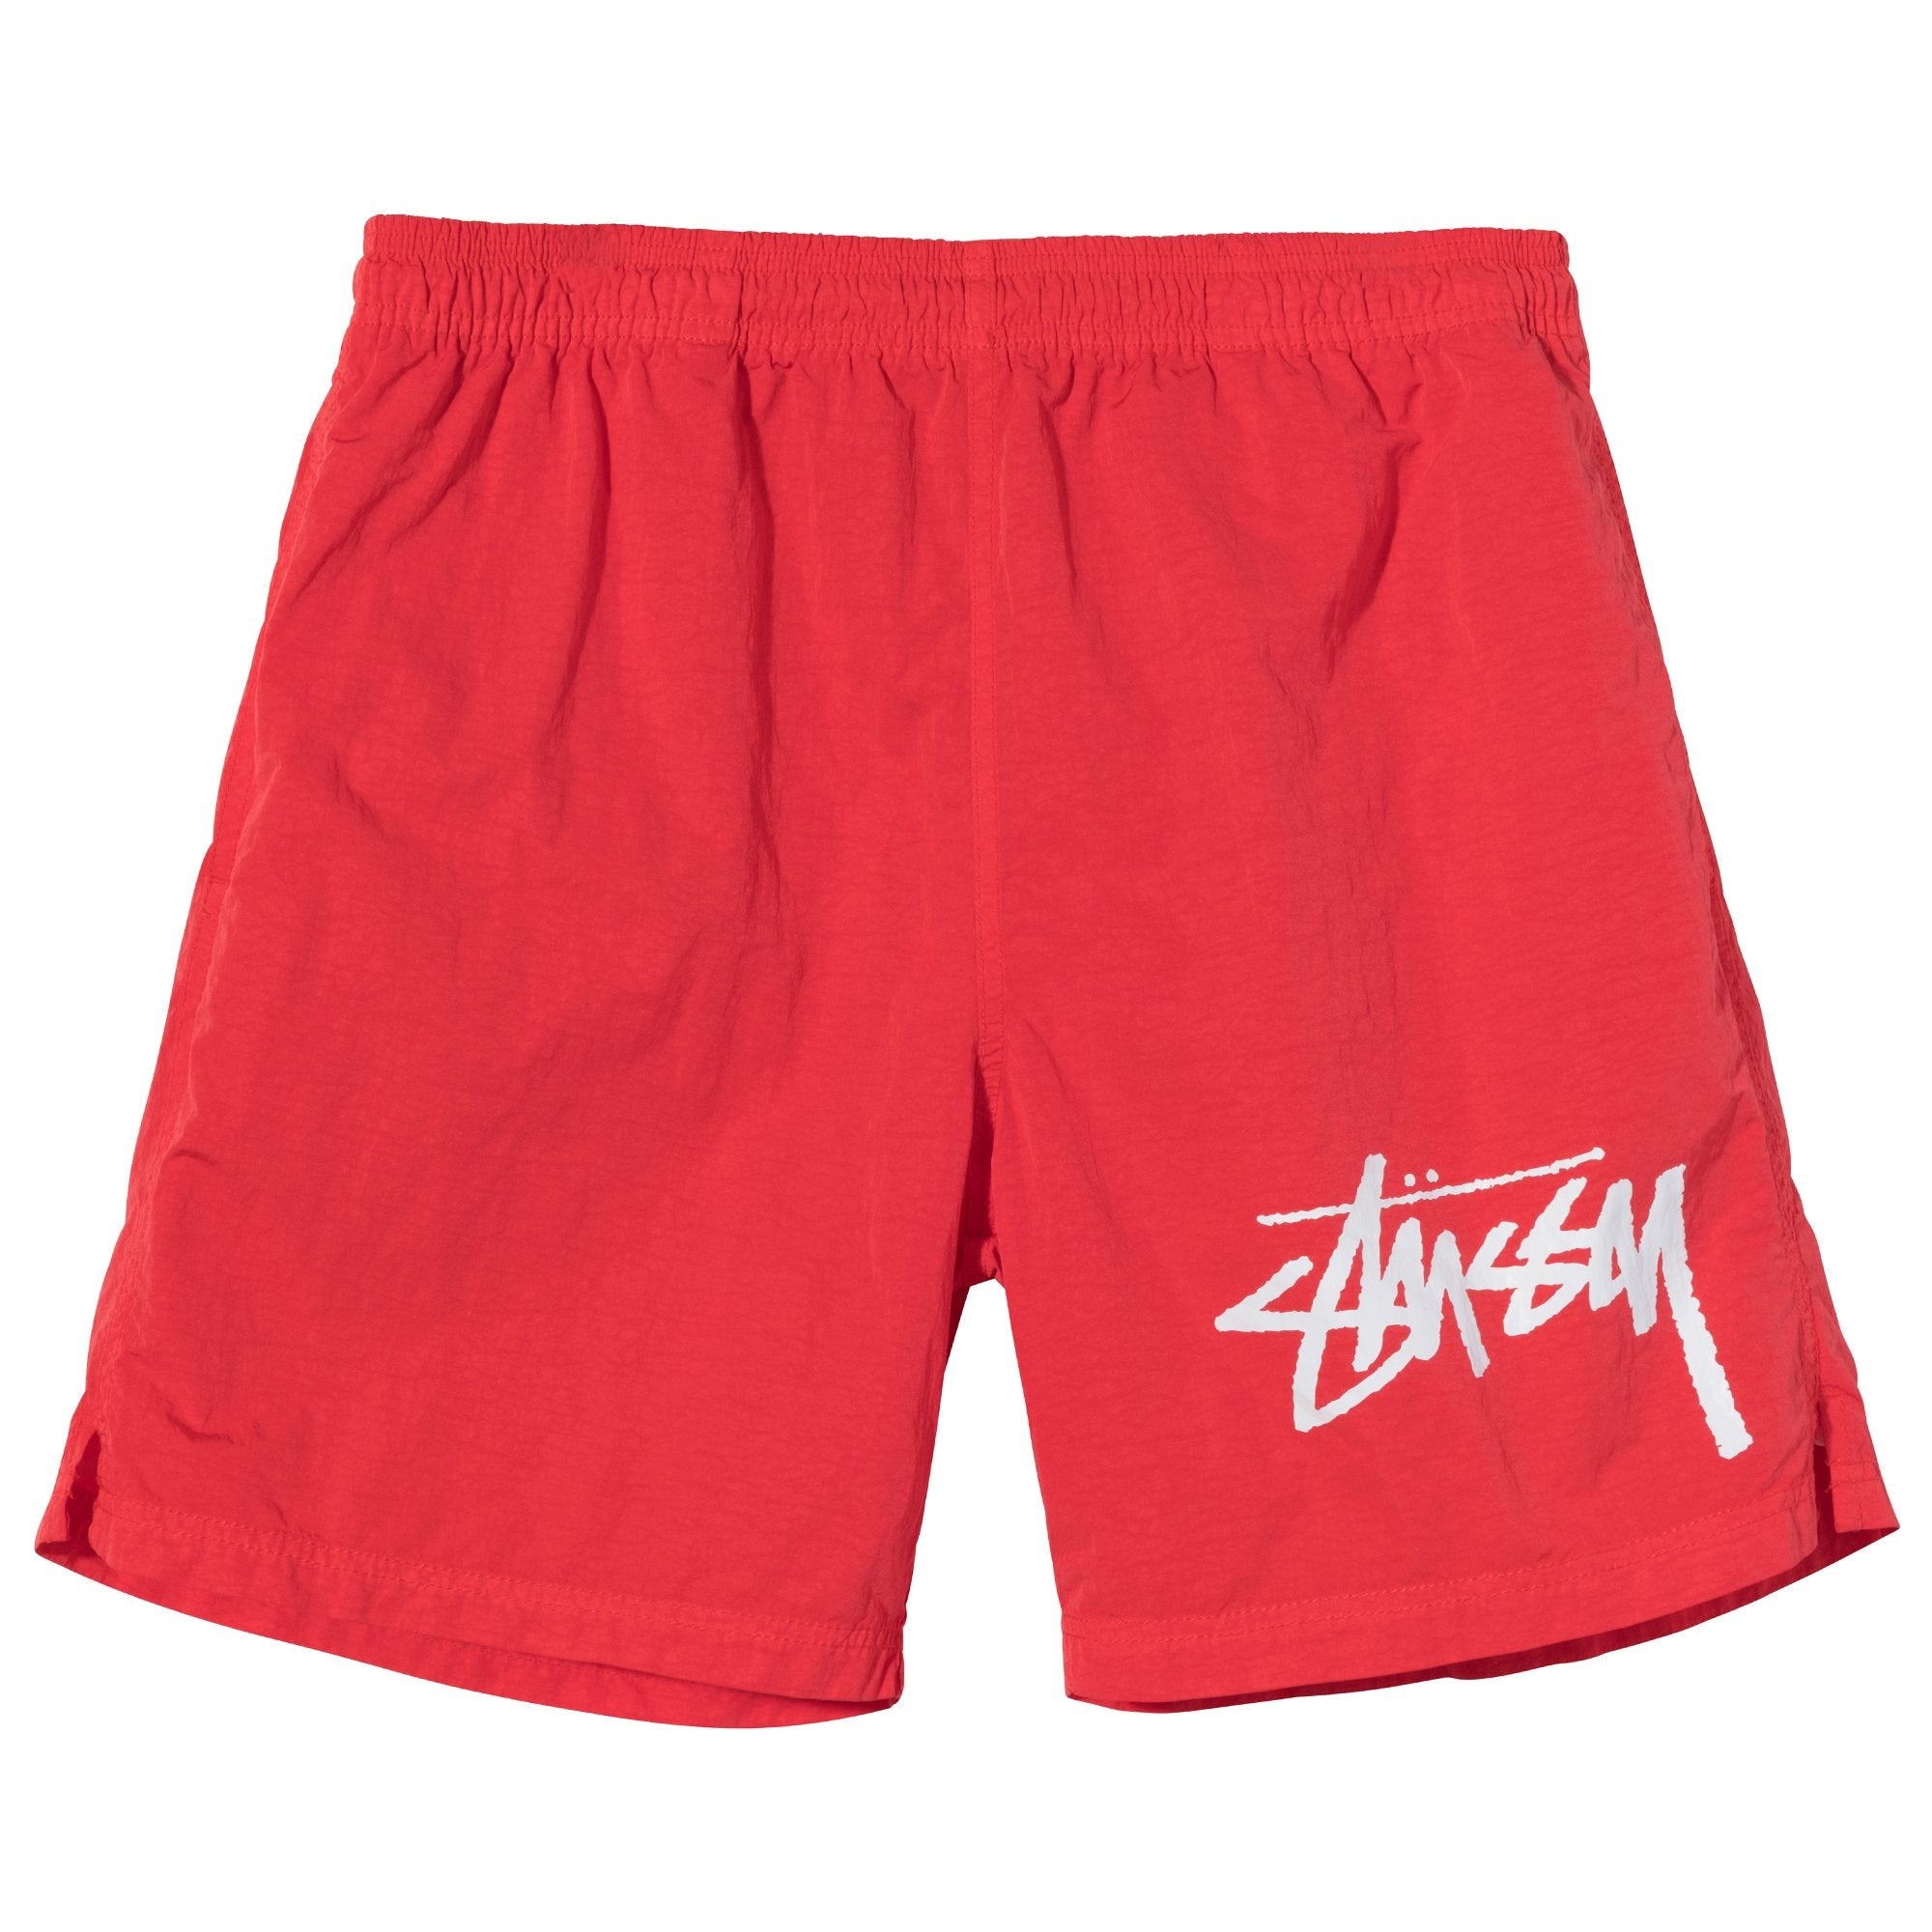 Nike Stussy Water Short CT4315-634 Habanero